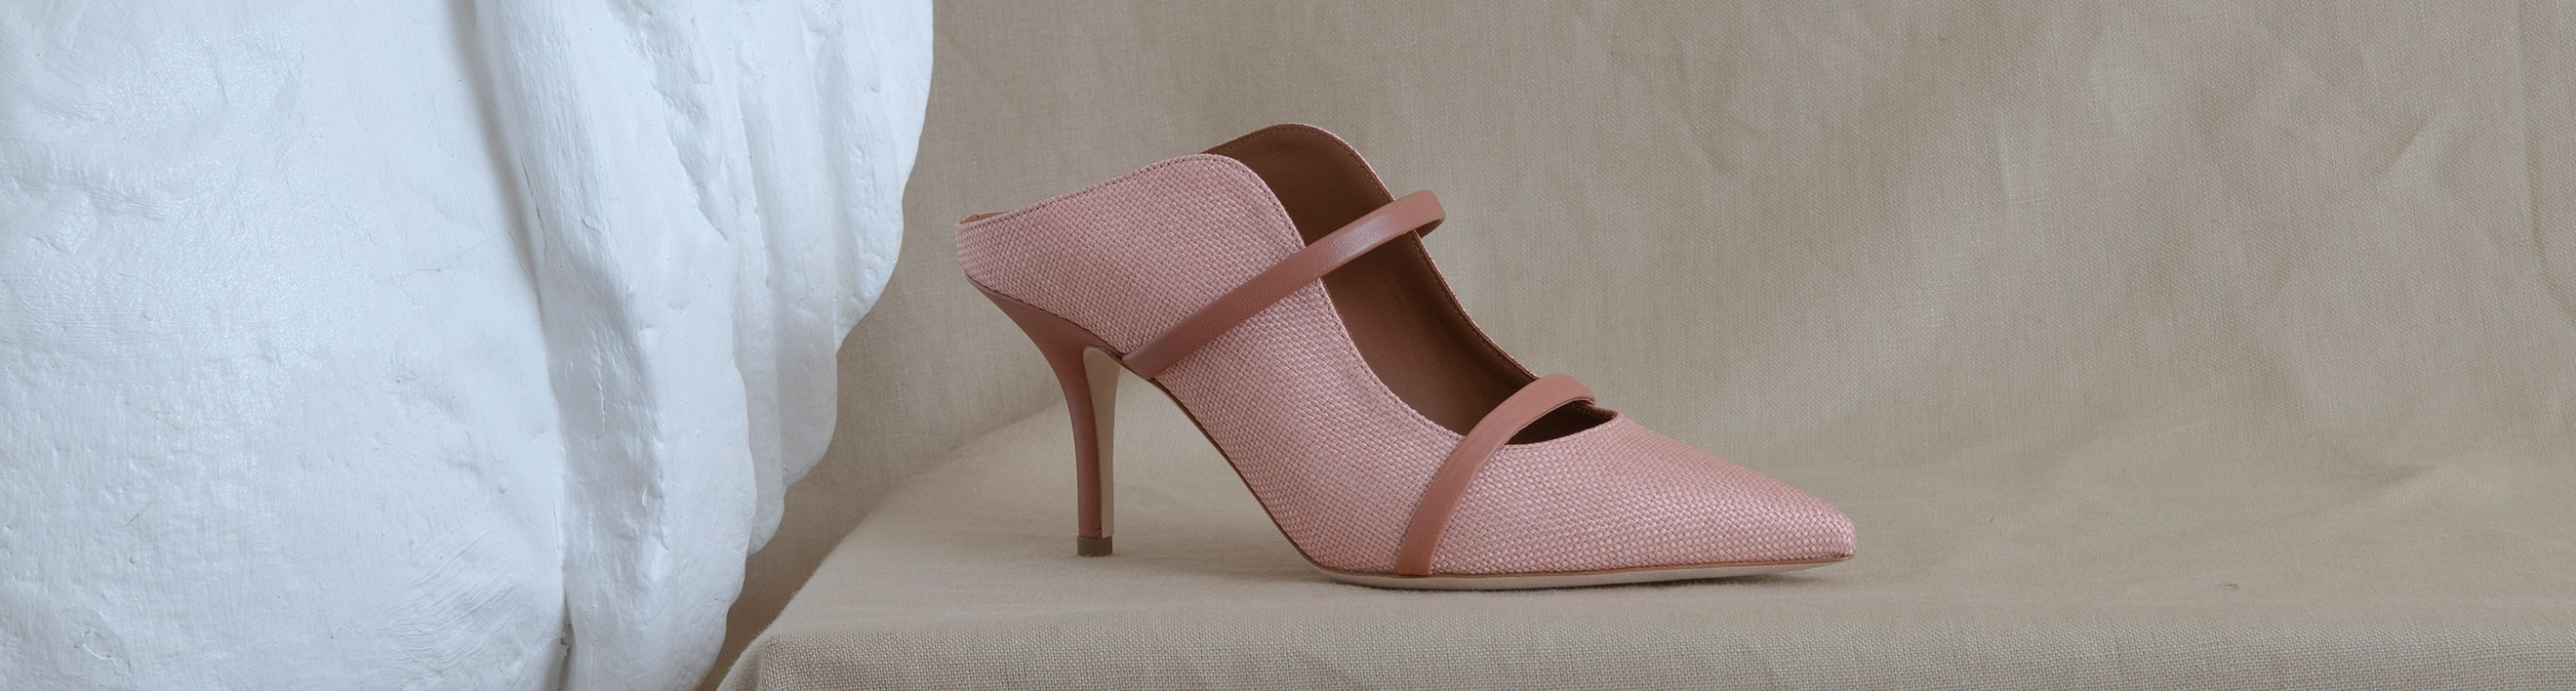 Customer Care Page Header Image of Women's Shoes Malone Souliers